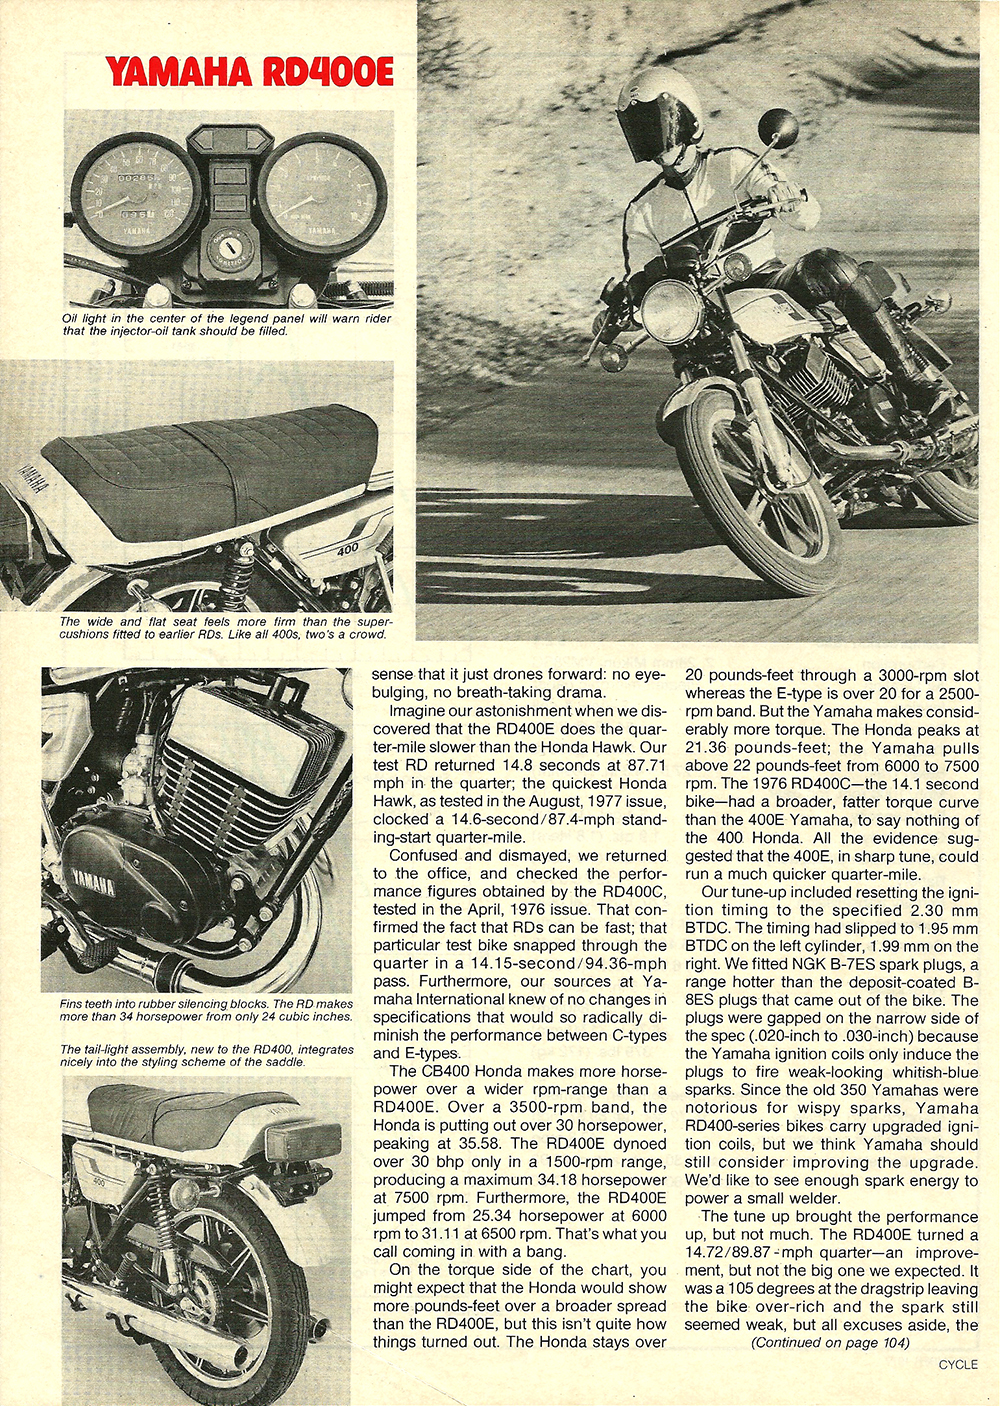 1977 Yamaha RD400E road test 5.jpg